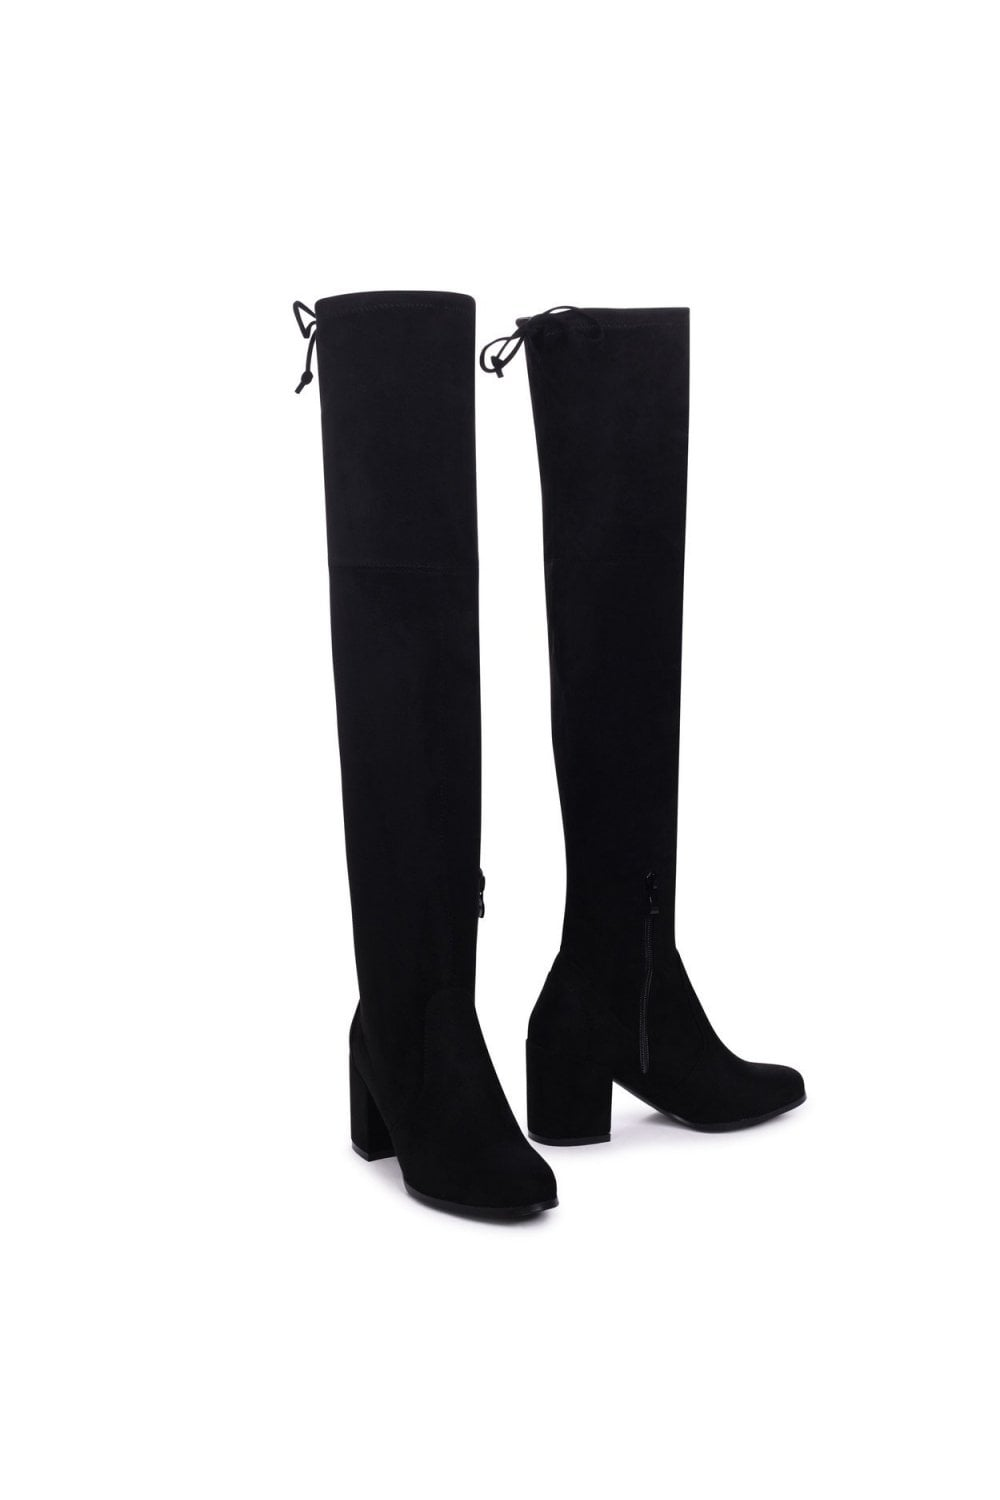 d479a1bcd99 ... Linzi Amber Black Suede Block Heeled Over The Knee Boots with Tie Up  Back ...